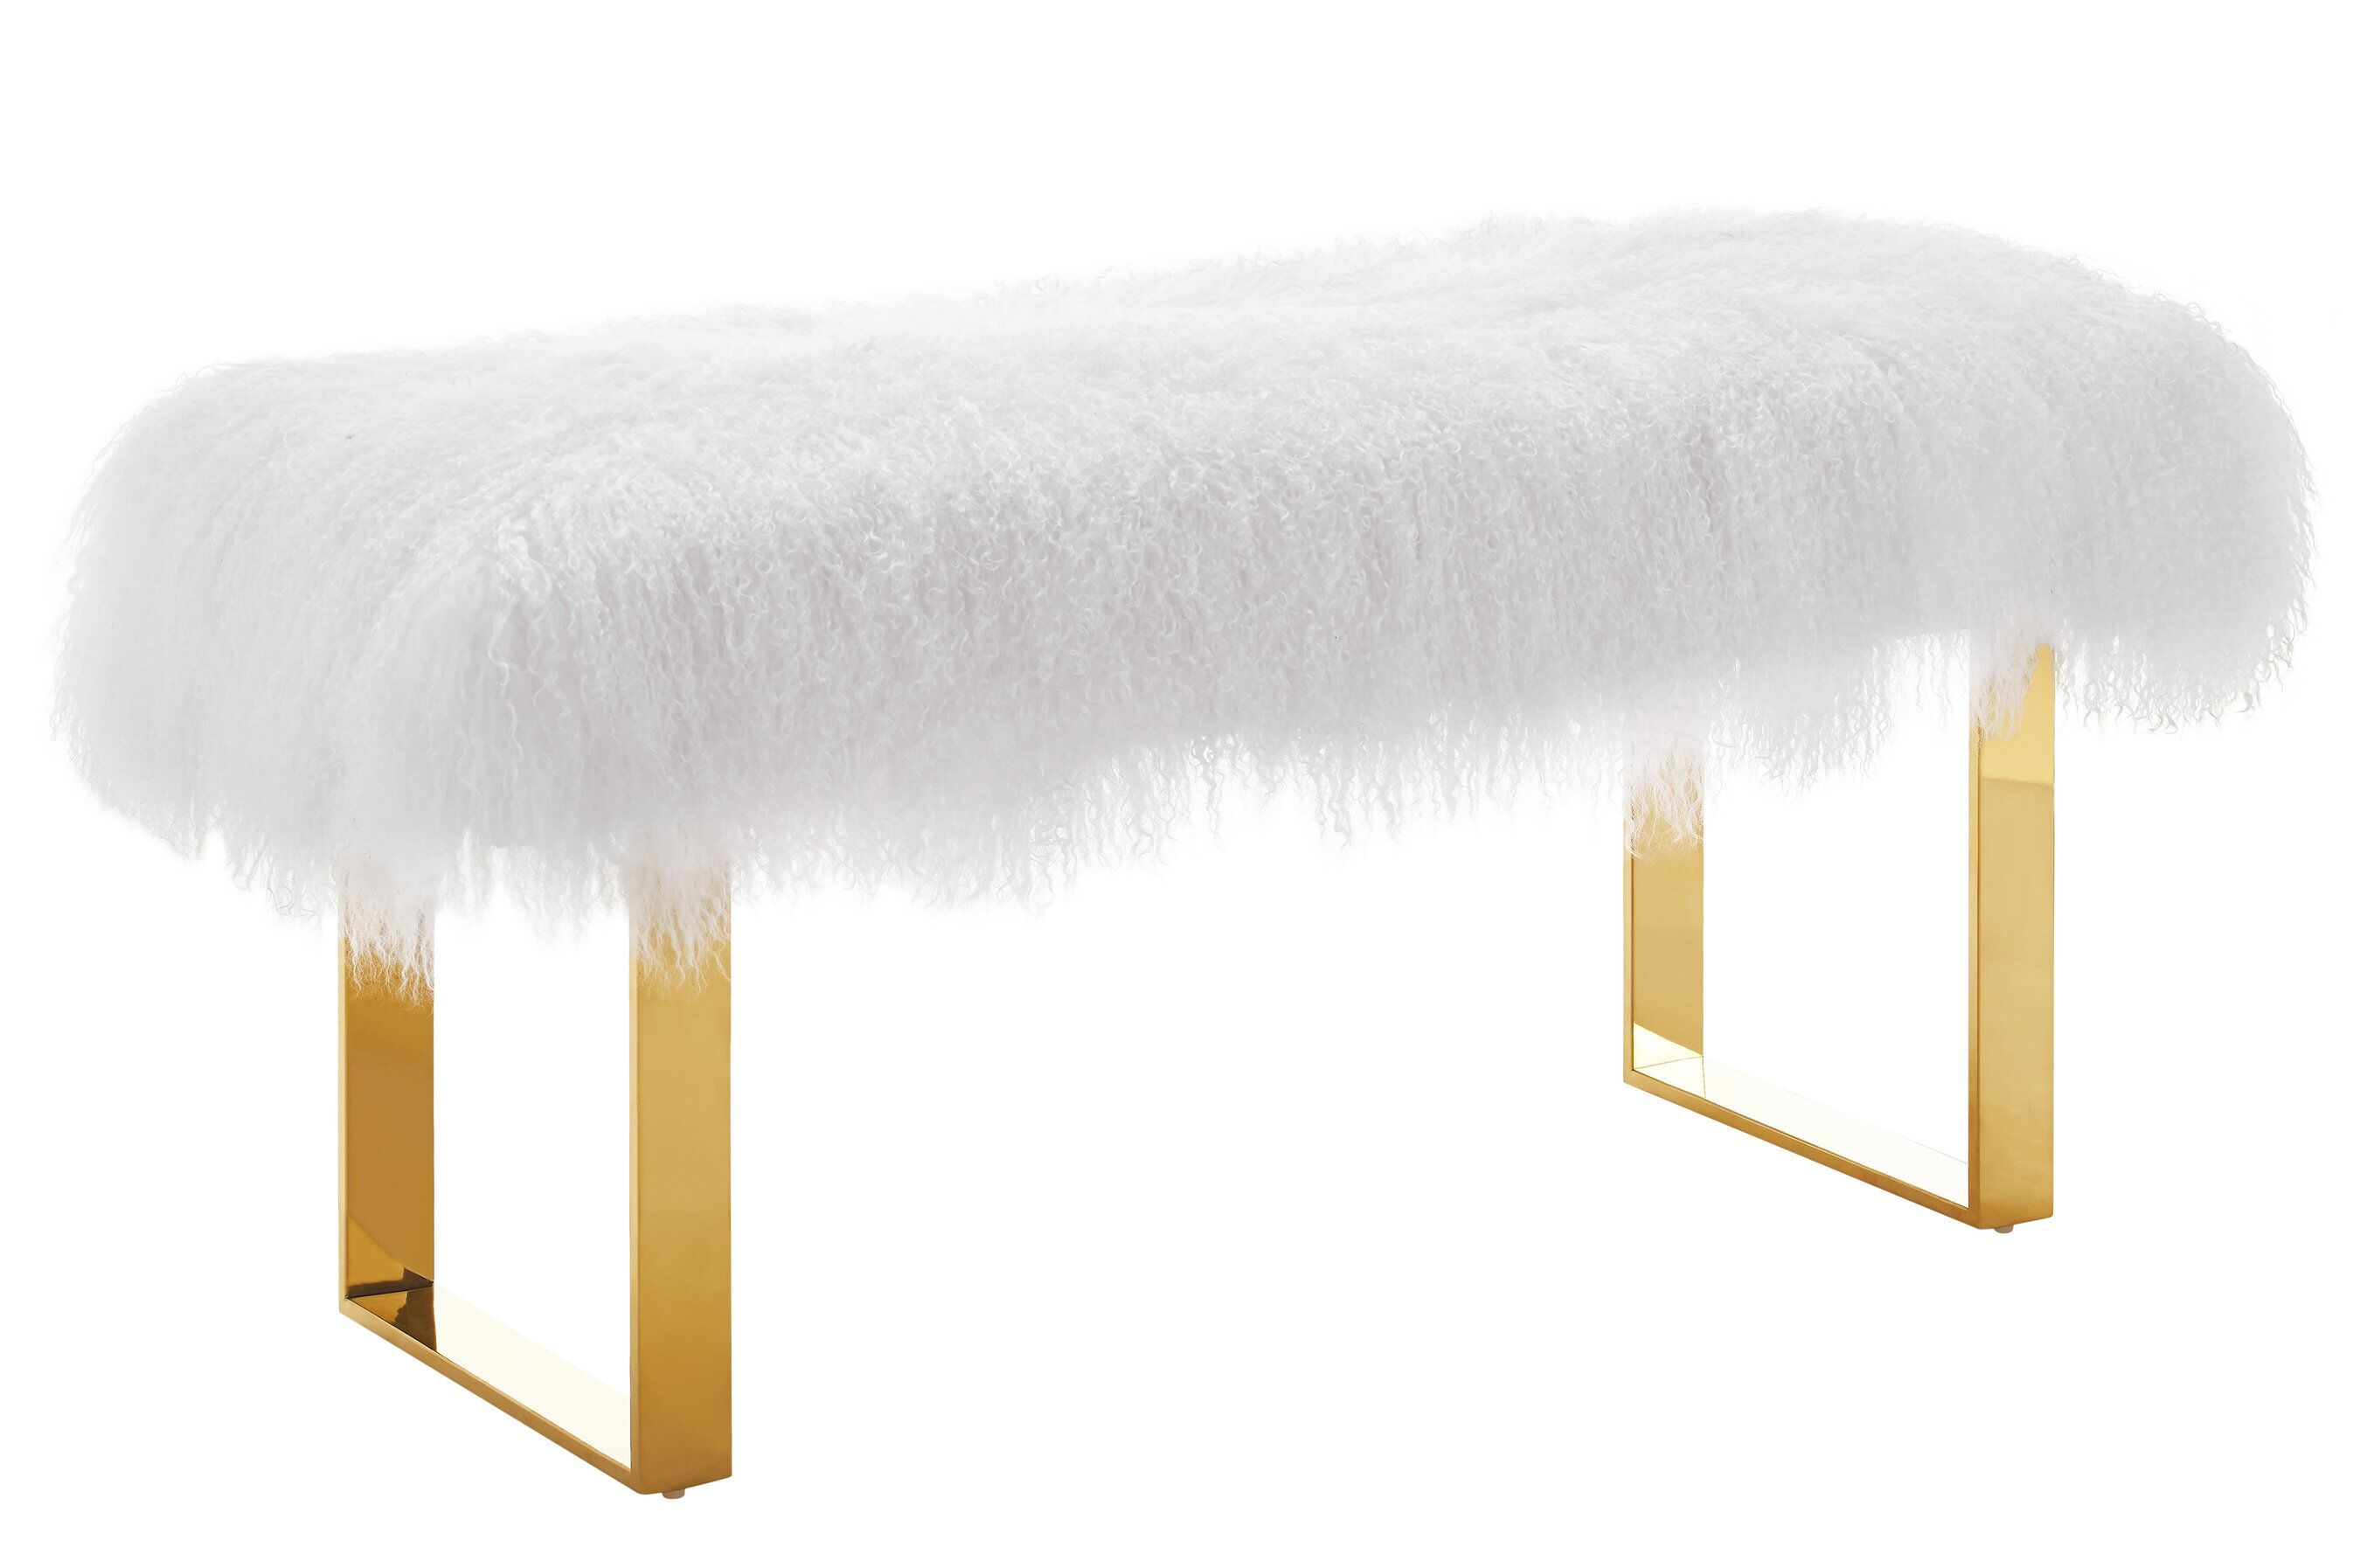 Swell Sherpa White Fur Bench W Gold Legs By Tov Furniture Squirreltailoven Fun Painted Chair Ideas Images Squirreltailovenorg